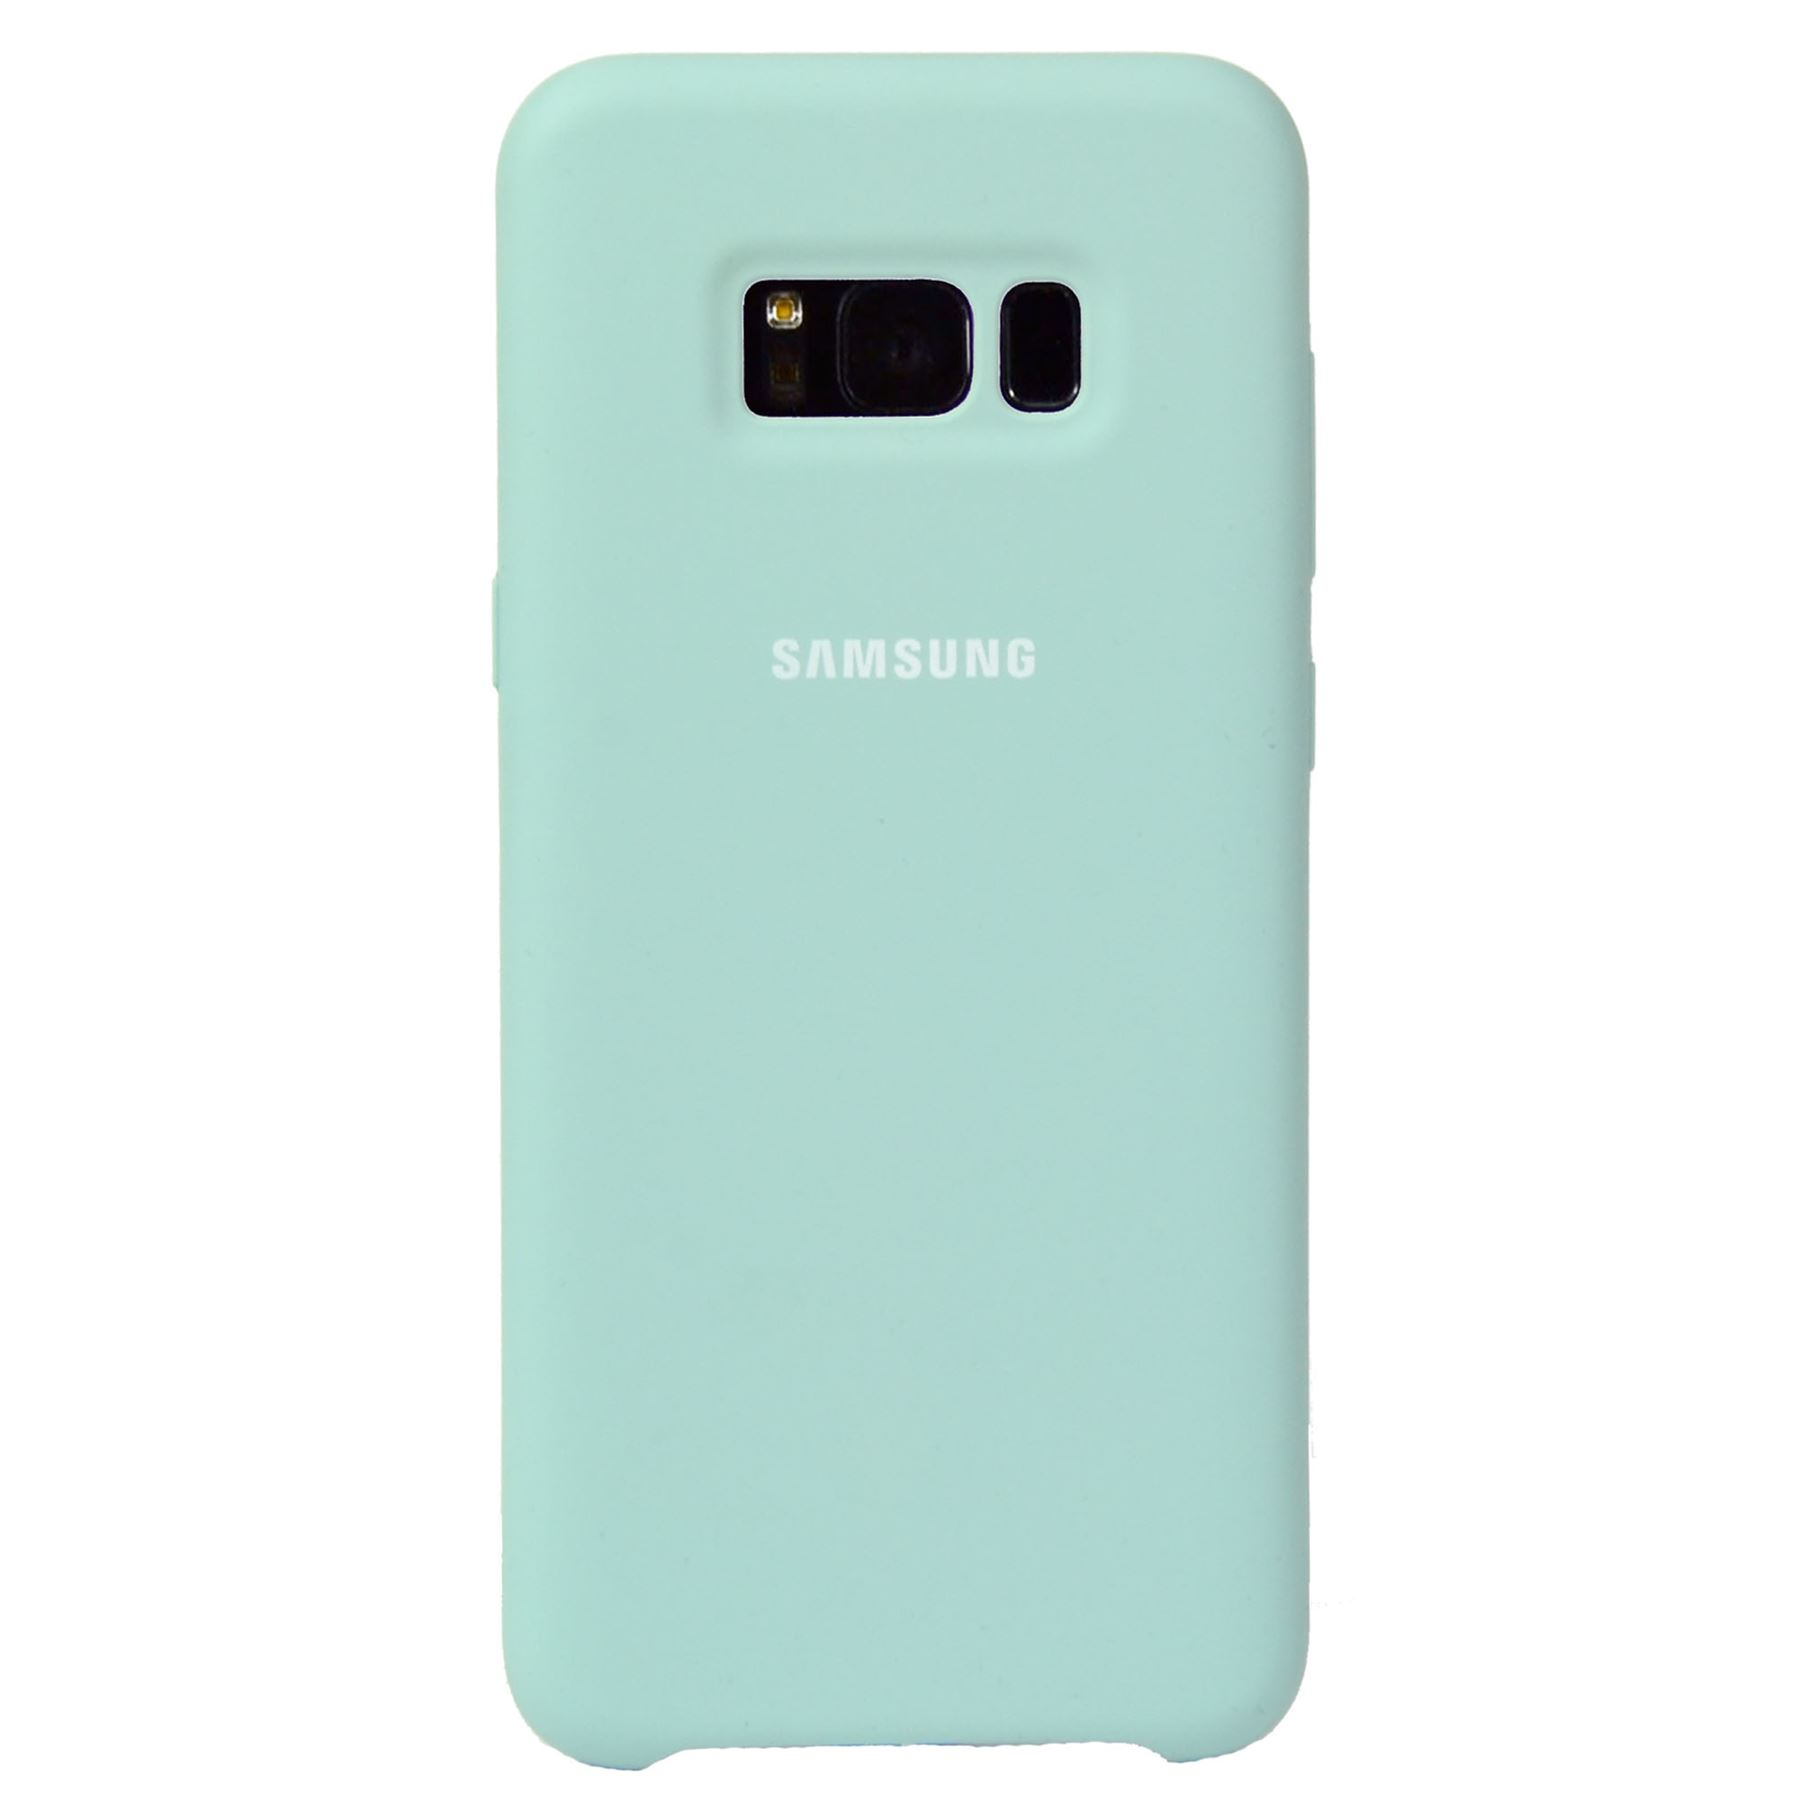 Samsung S8 Case Original Silicone Galaxy Plus Phone Cover Casing For